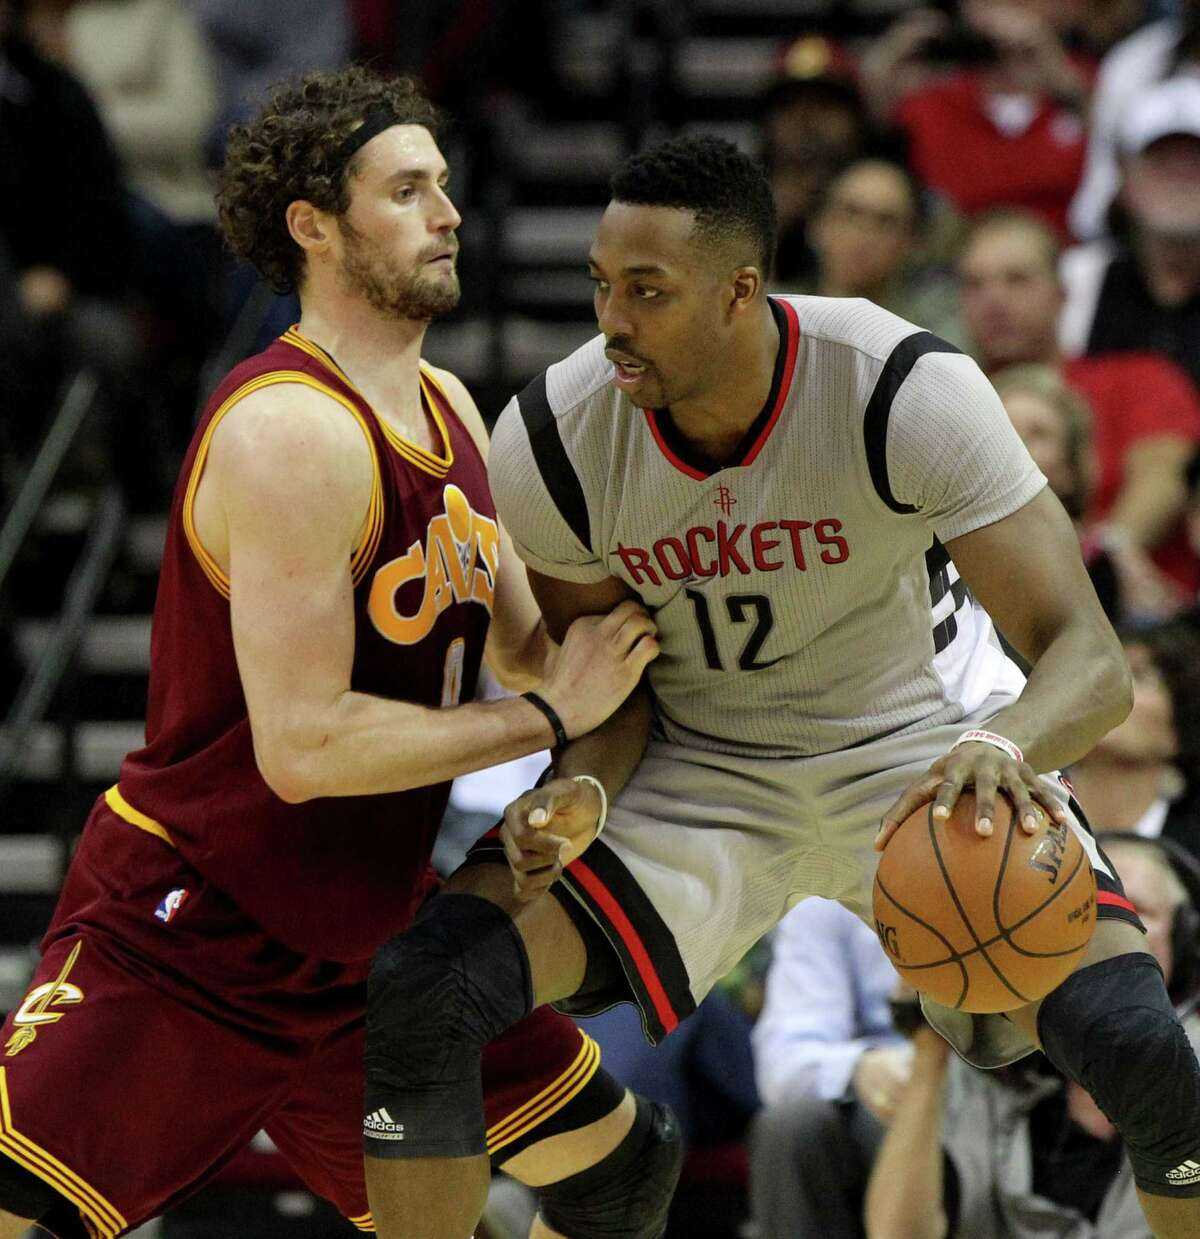 Cleveland Cavaliers forward Kevin Love (0) guards Houston Rockets center Dwight Howard (12) during the third quarter at the Toyota Center Friday, Jan. 15, 2016, in Houston. Rockets lost 77-91. ( Gary Coronado / Houston Chronicle )